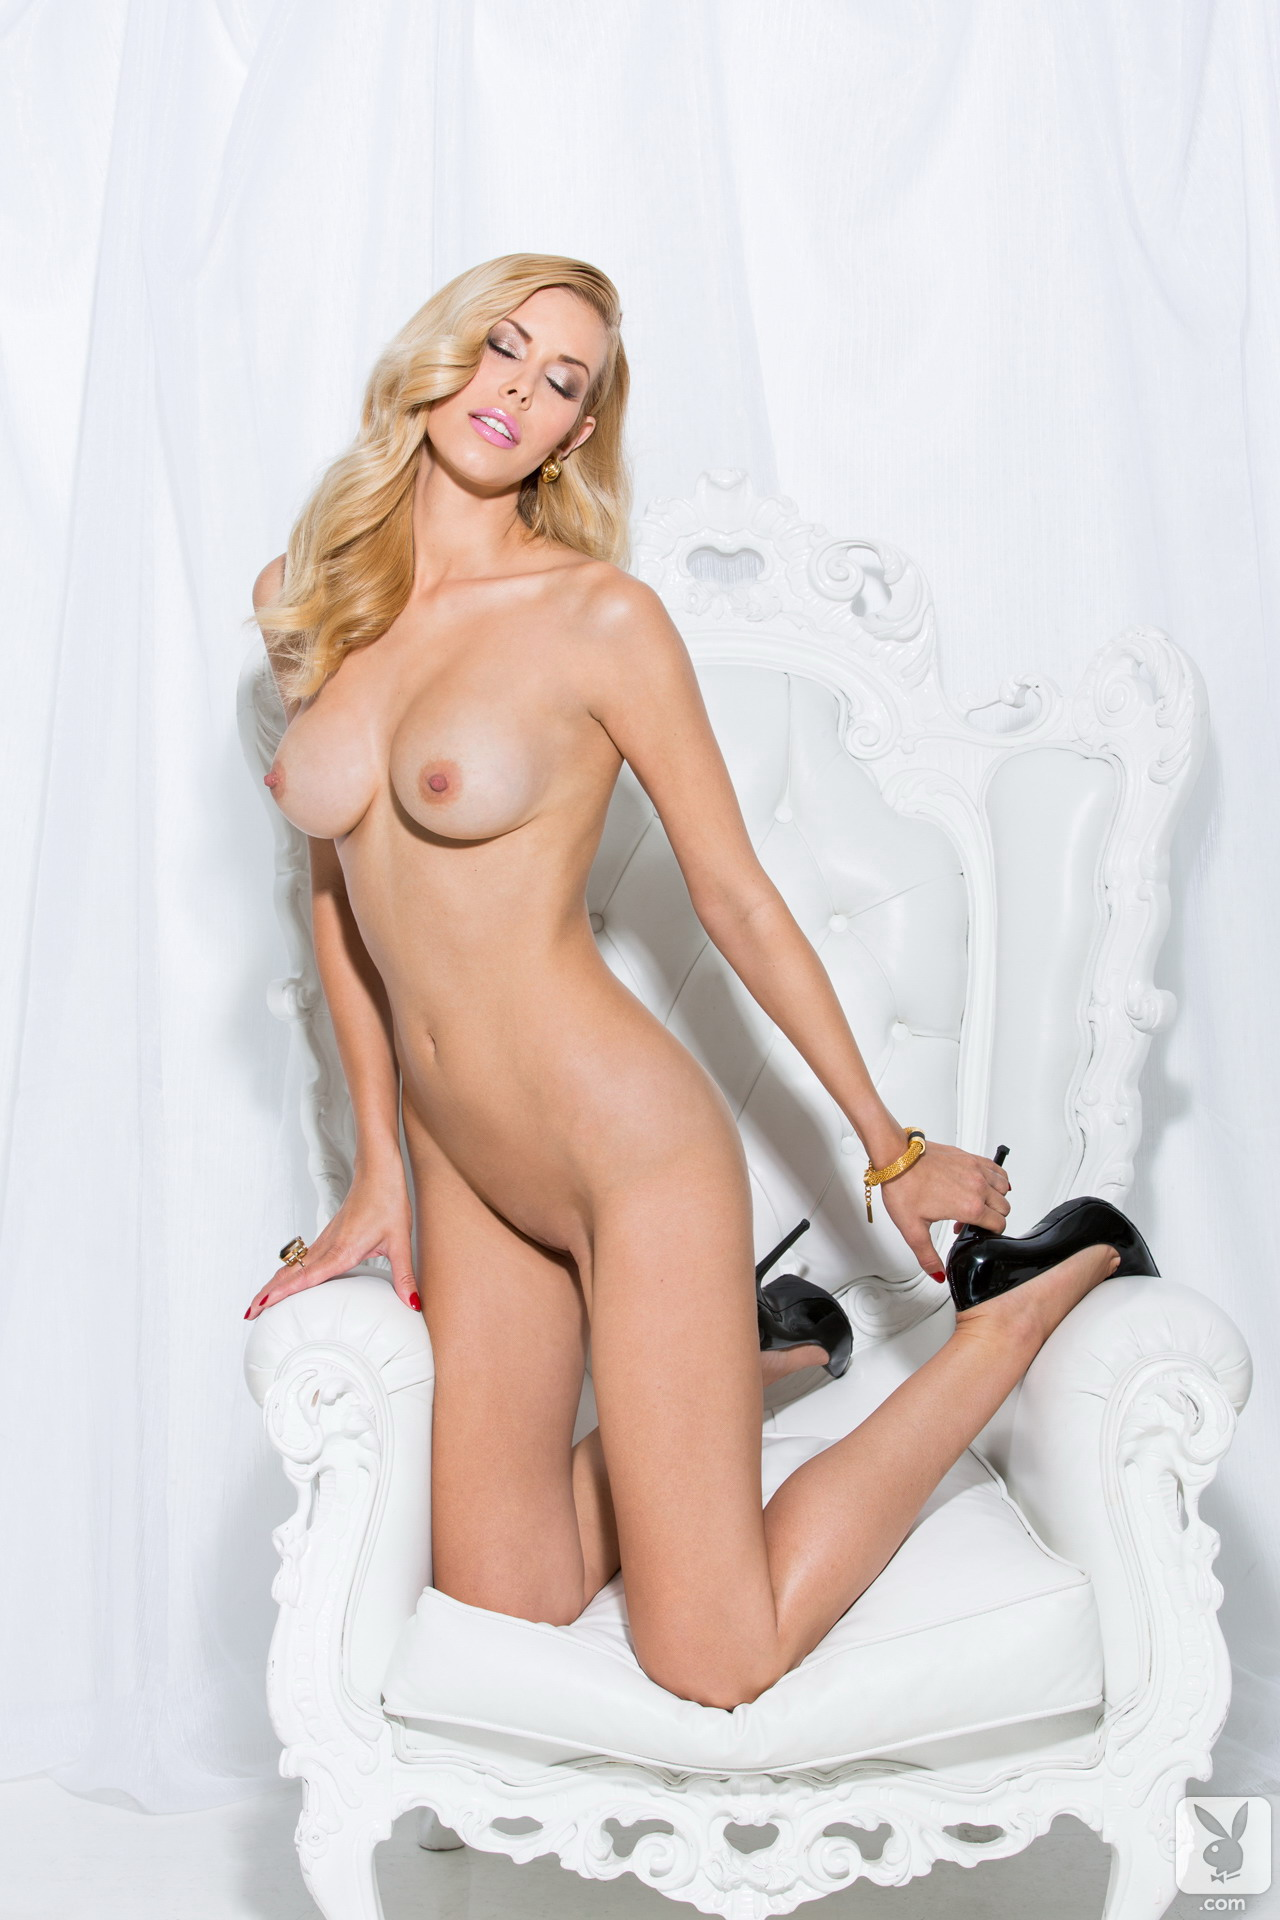 Kennedy summers black nighty playboy 18 RedBust: http://redblow.com/kennedy-summers-black-nighty/kennedy-summers-black-nighty-playboy-18/